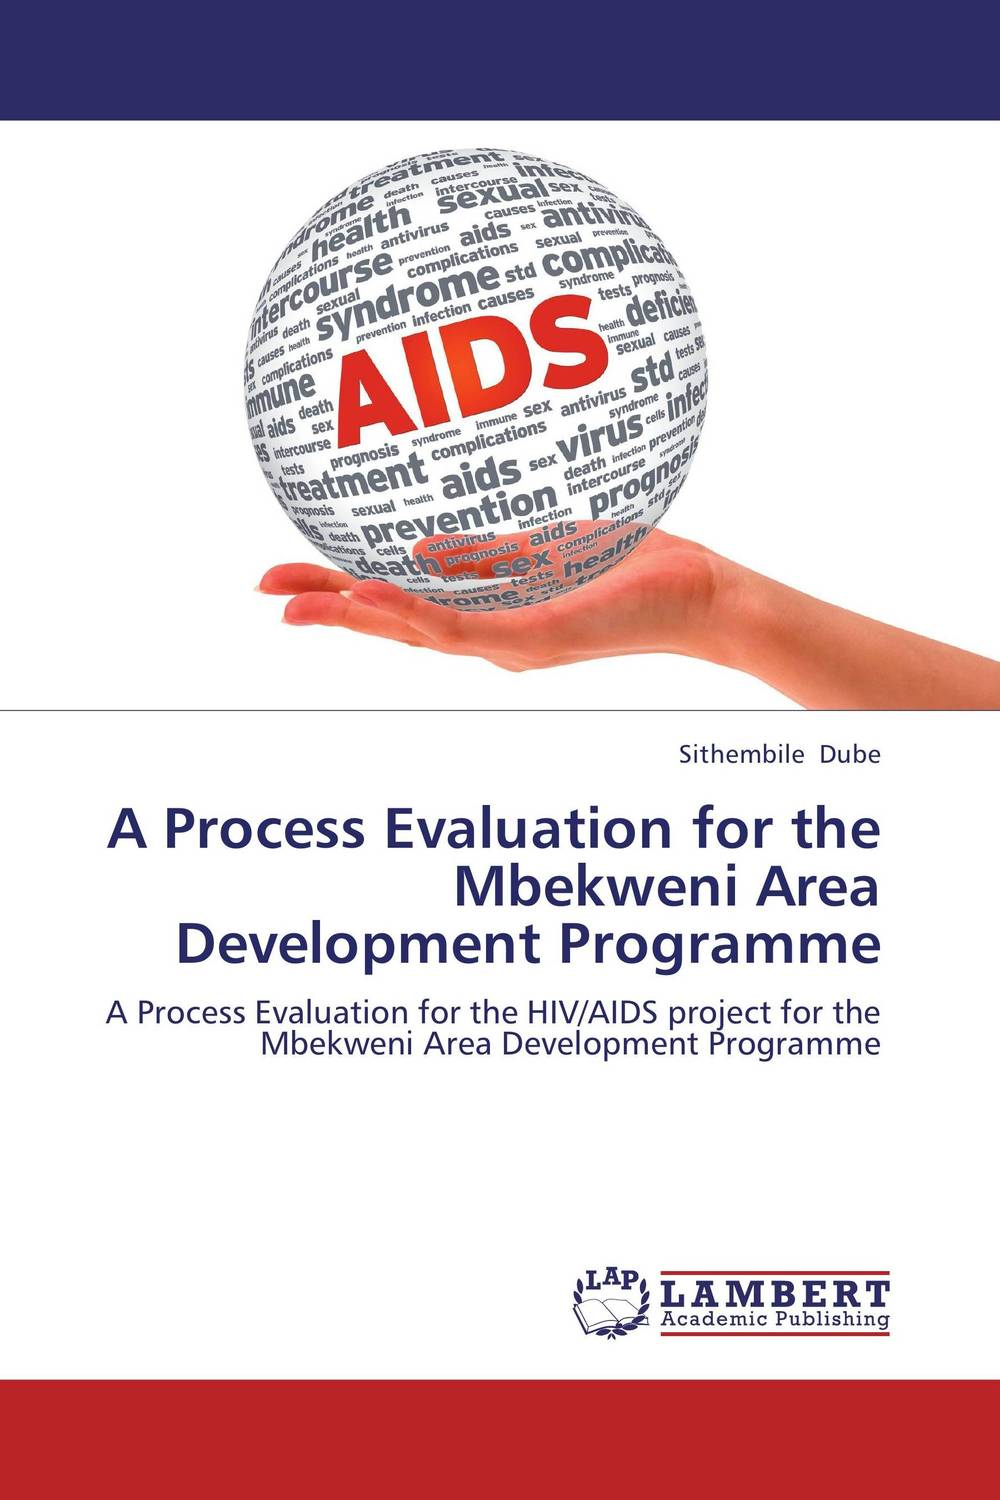 A Process Evaluation for the Mbekweni Area Development Programme evaluation of the impact of a mega sporting event